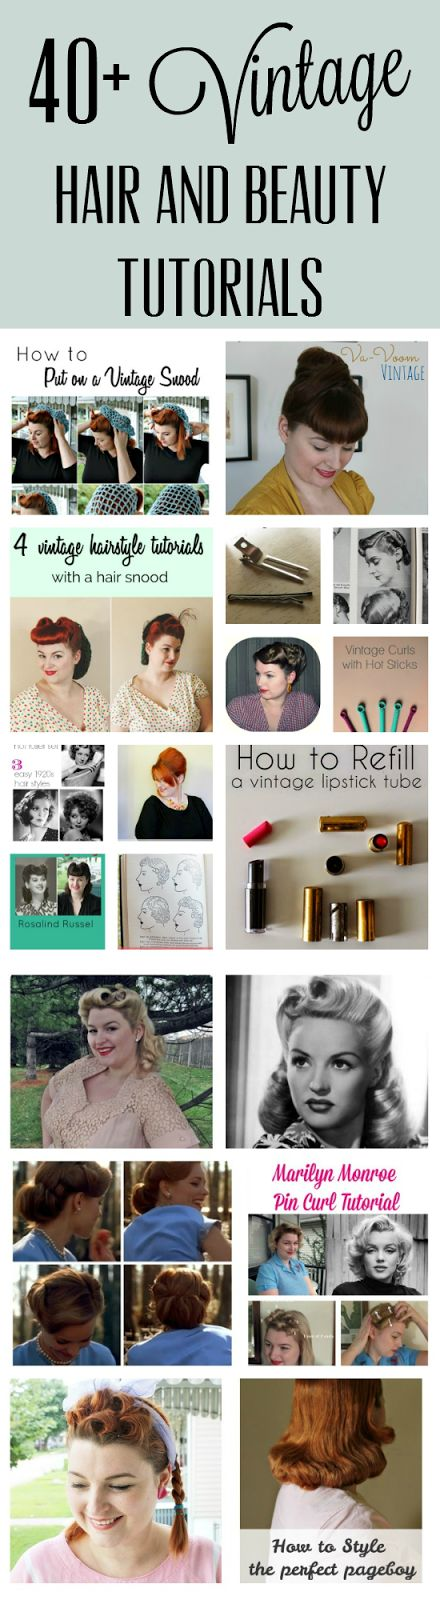 Best Vintage Hair Tutorials Ideas On Pinterest S Hair - Classic hairstyle tutorials